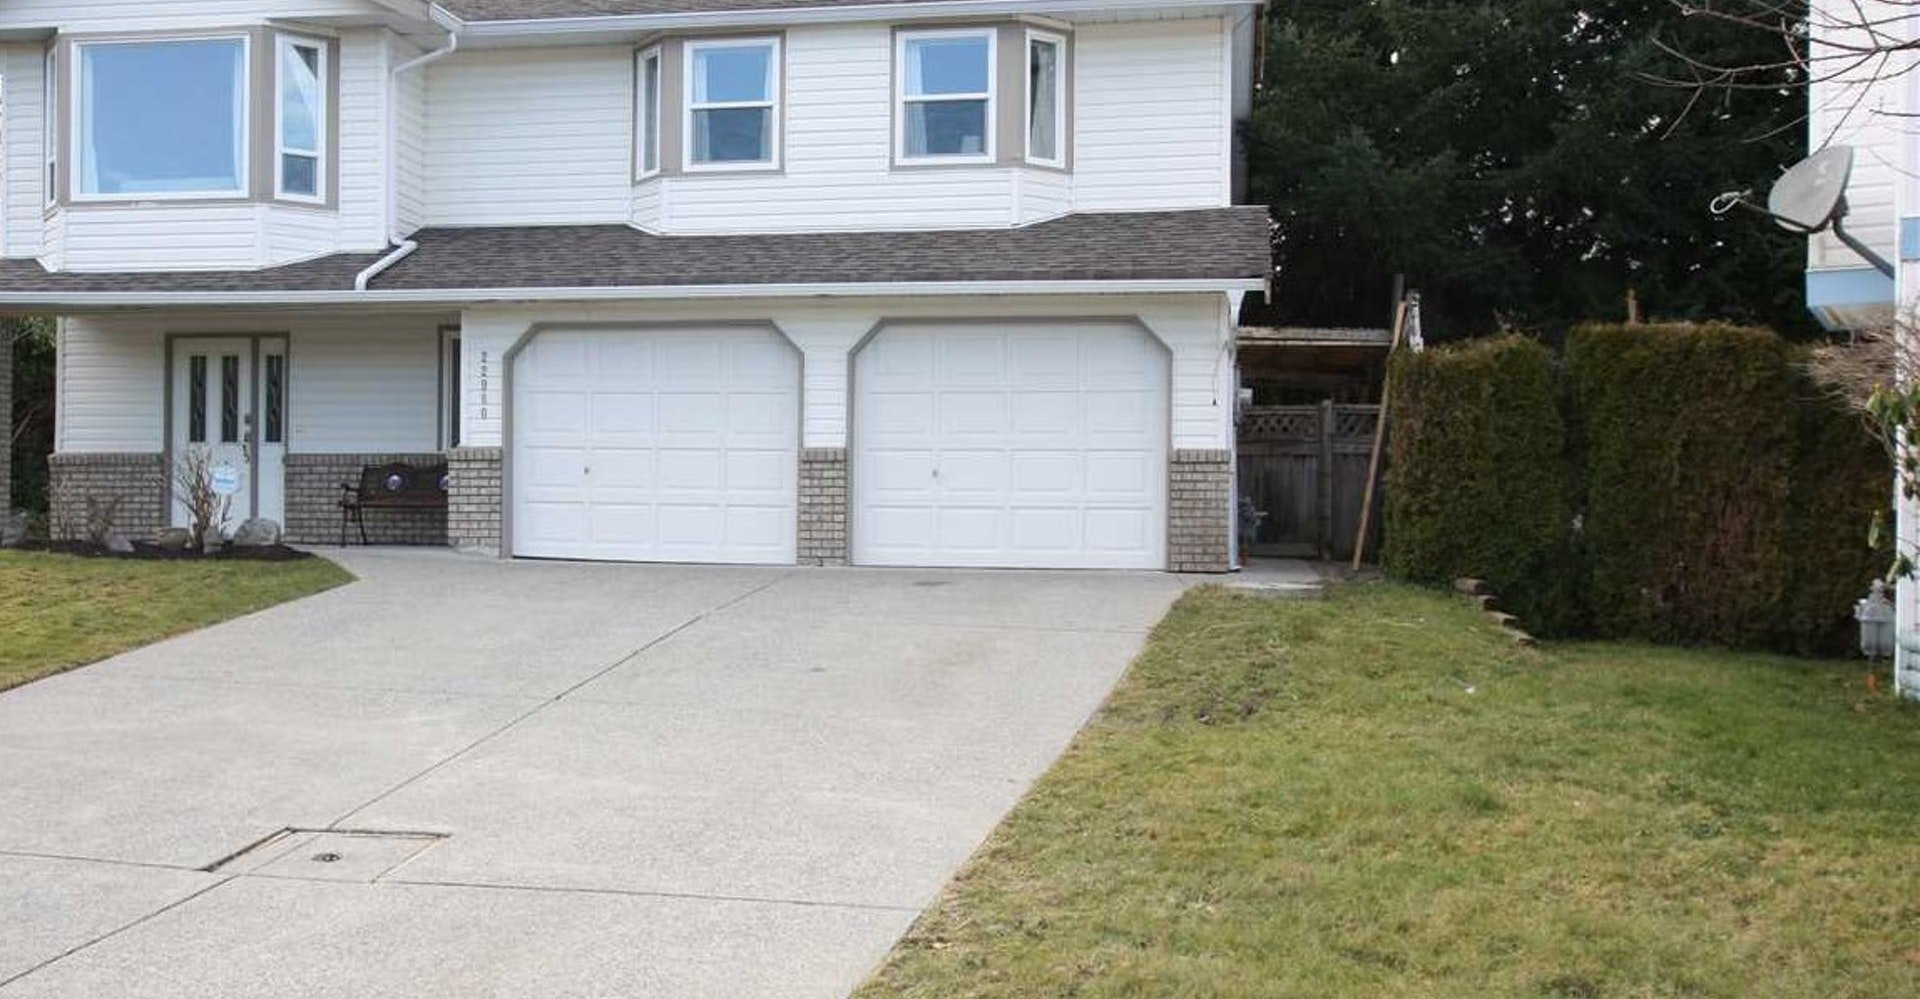 Main Photo: 22980 124B Street in Maple RIdge: East Central House for sale (Maple Ridge)  : MLS®# R2335857